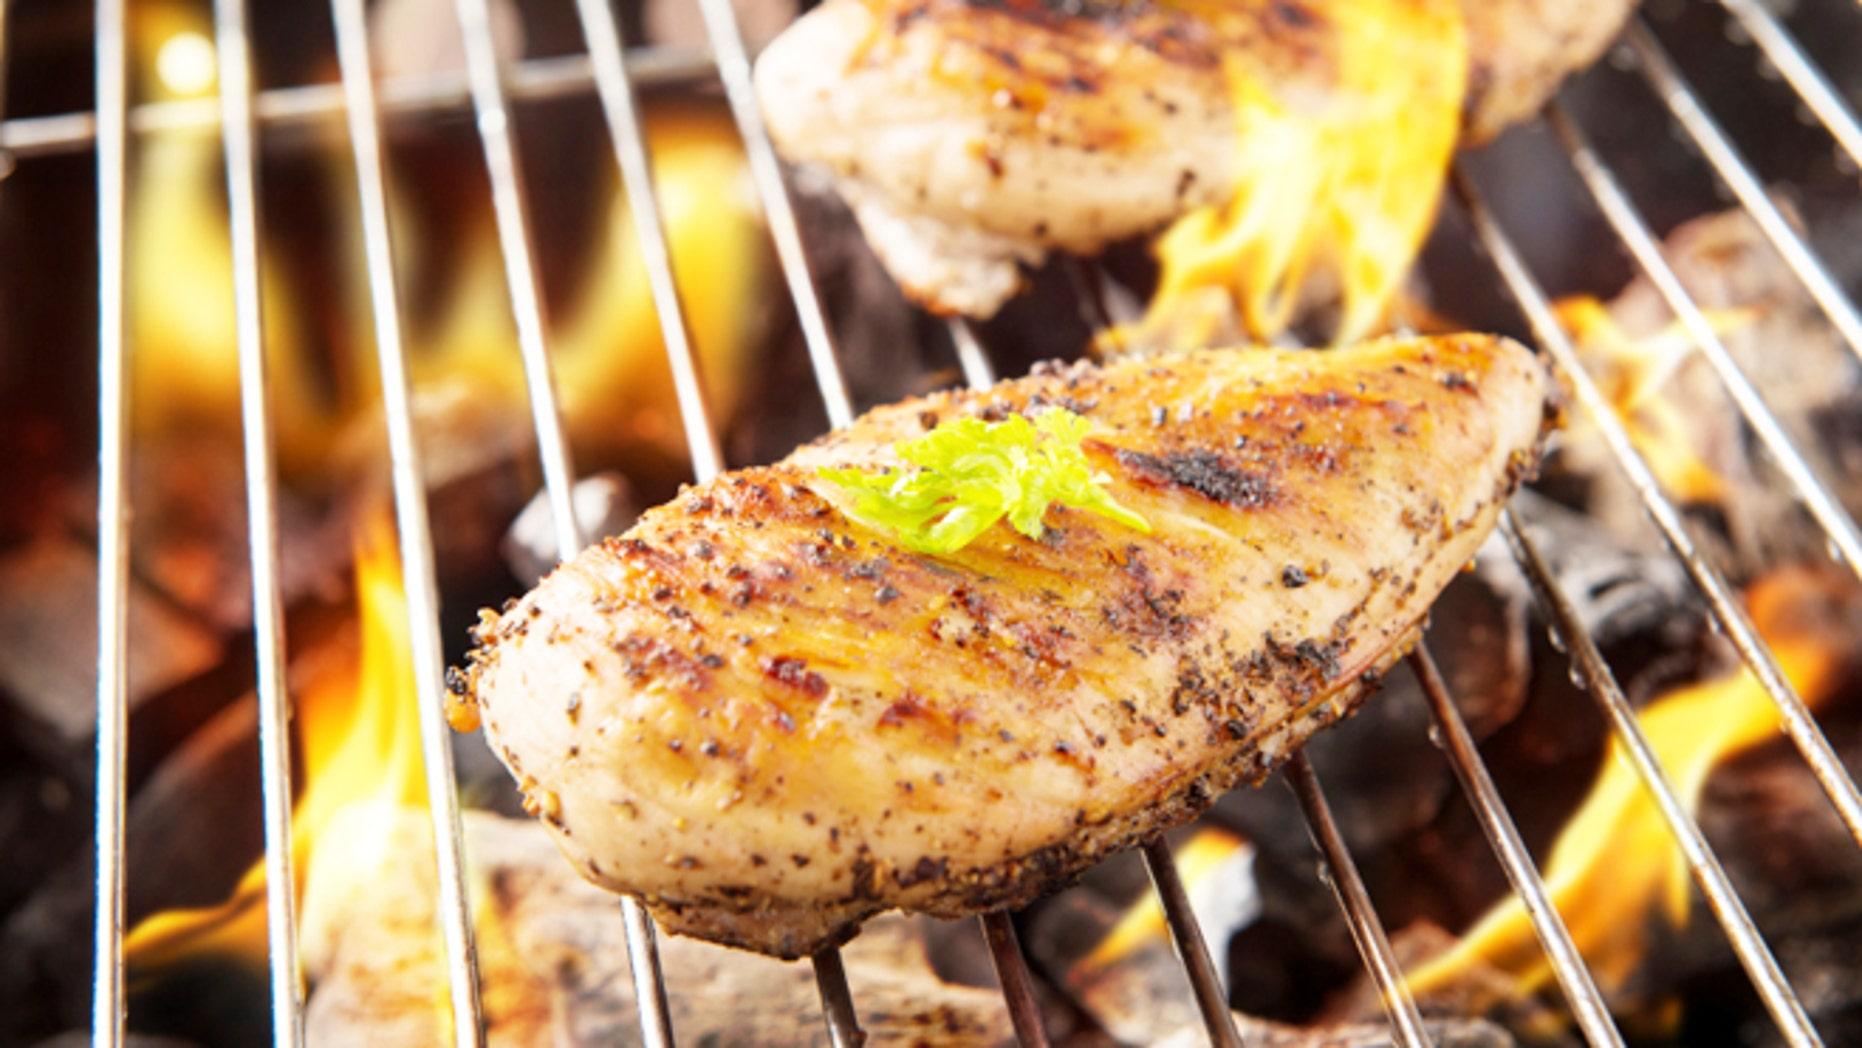 Chicken breast is versatile but can sometimes be difficult to cook right.